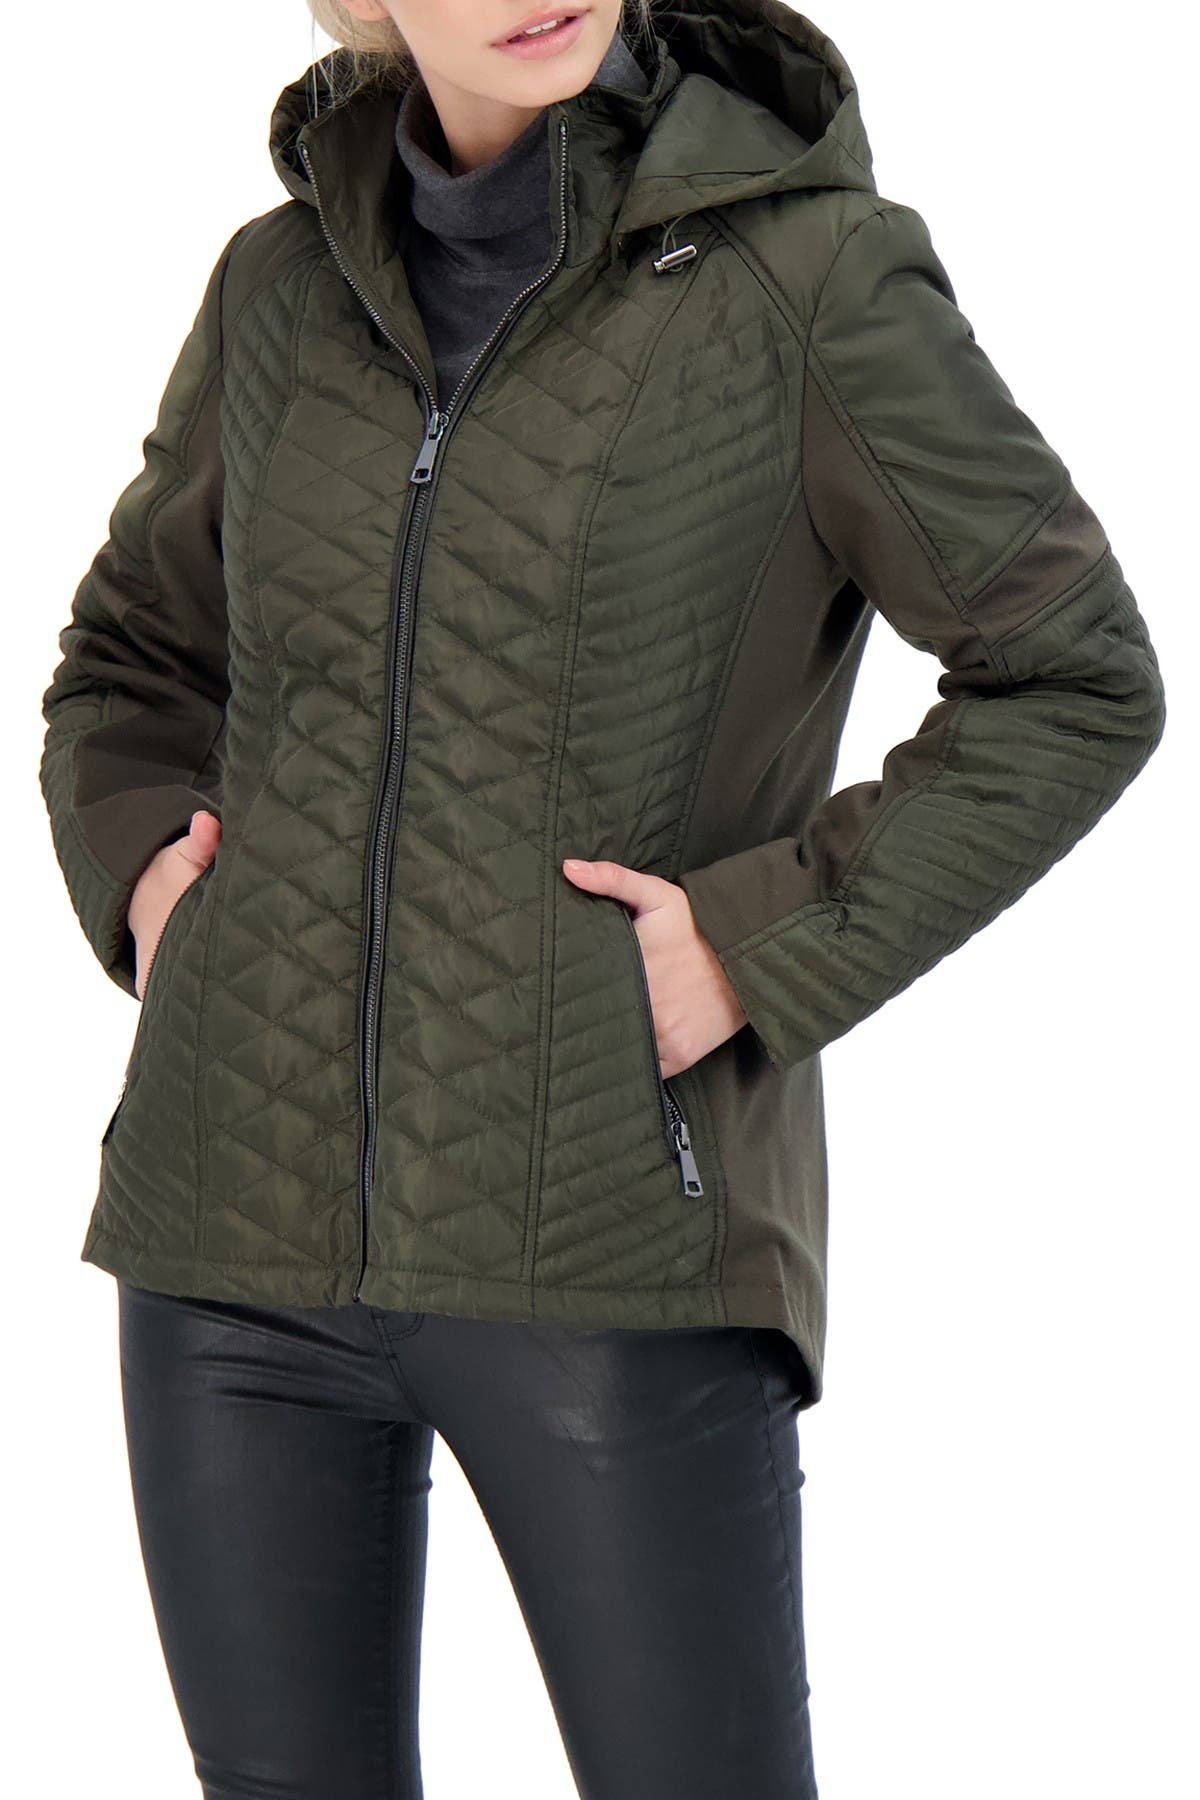 Image of Sebby Collection Hooded Quilted Jacket